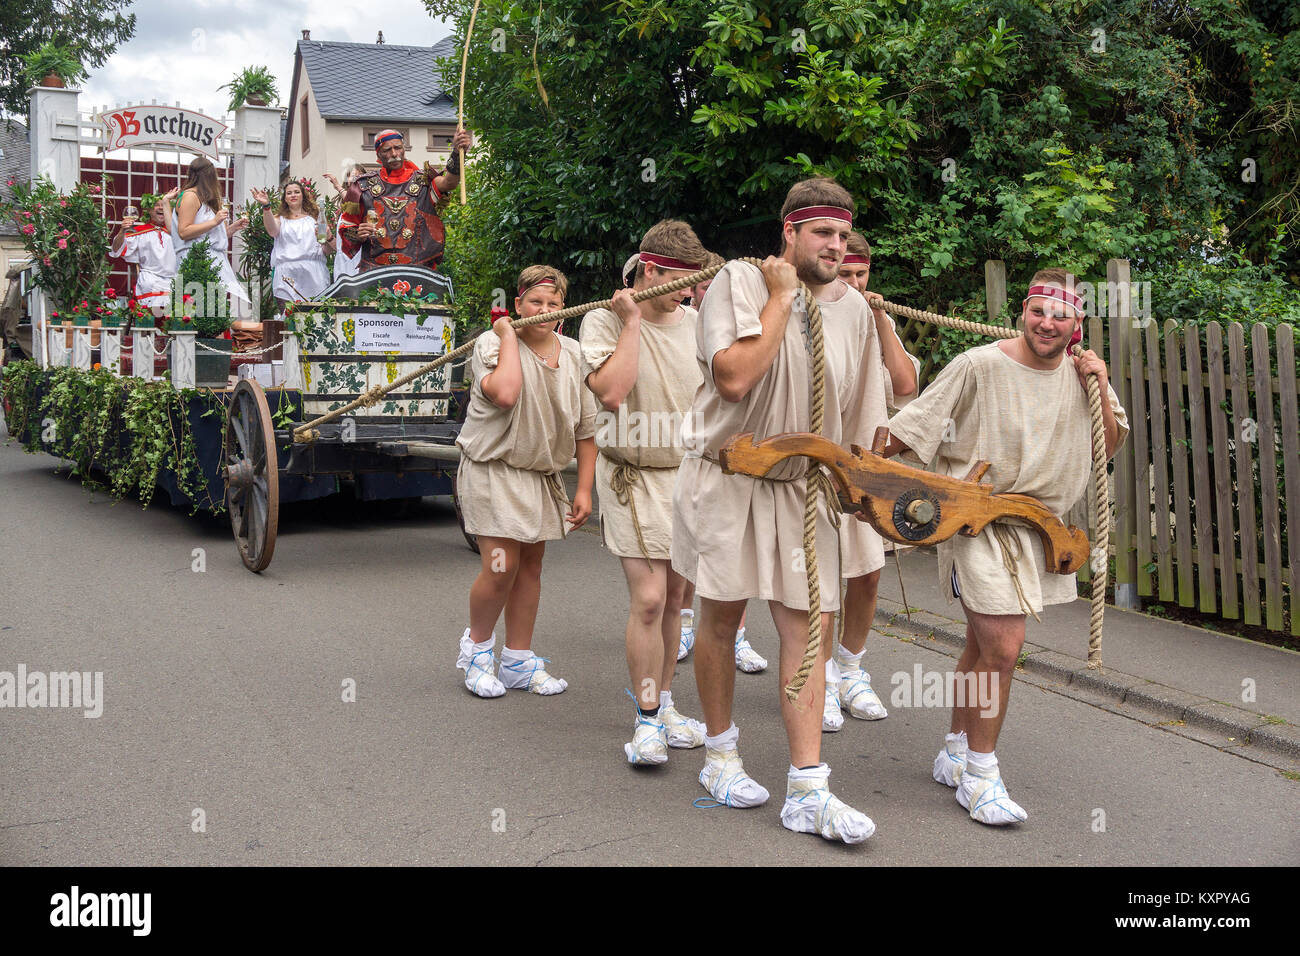 Locals with roman slave costumes pulling a float with wine queen and god of wine Bacchuss, wineship festival, Neumagen Stock Photo